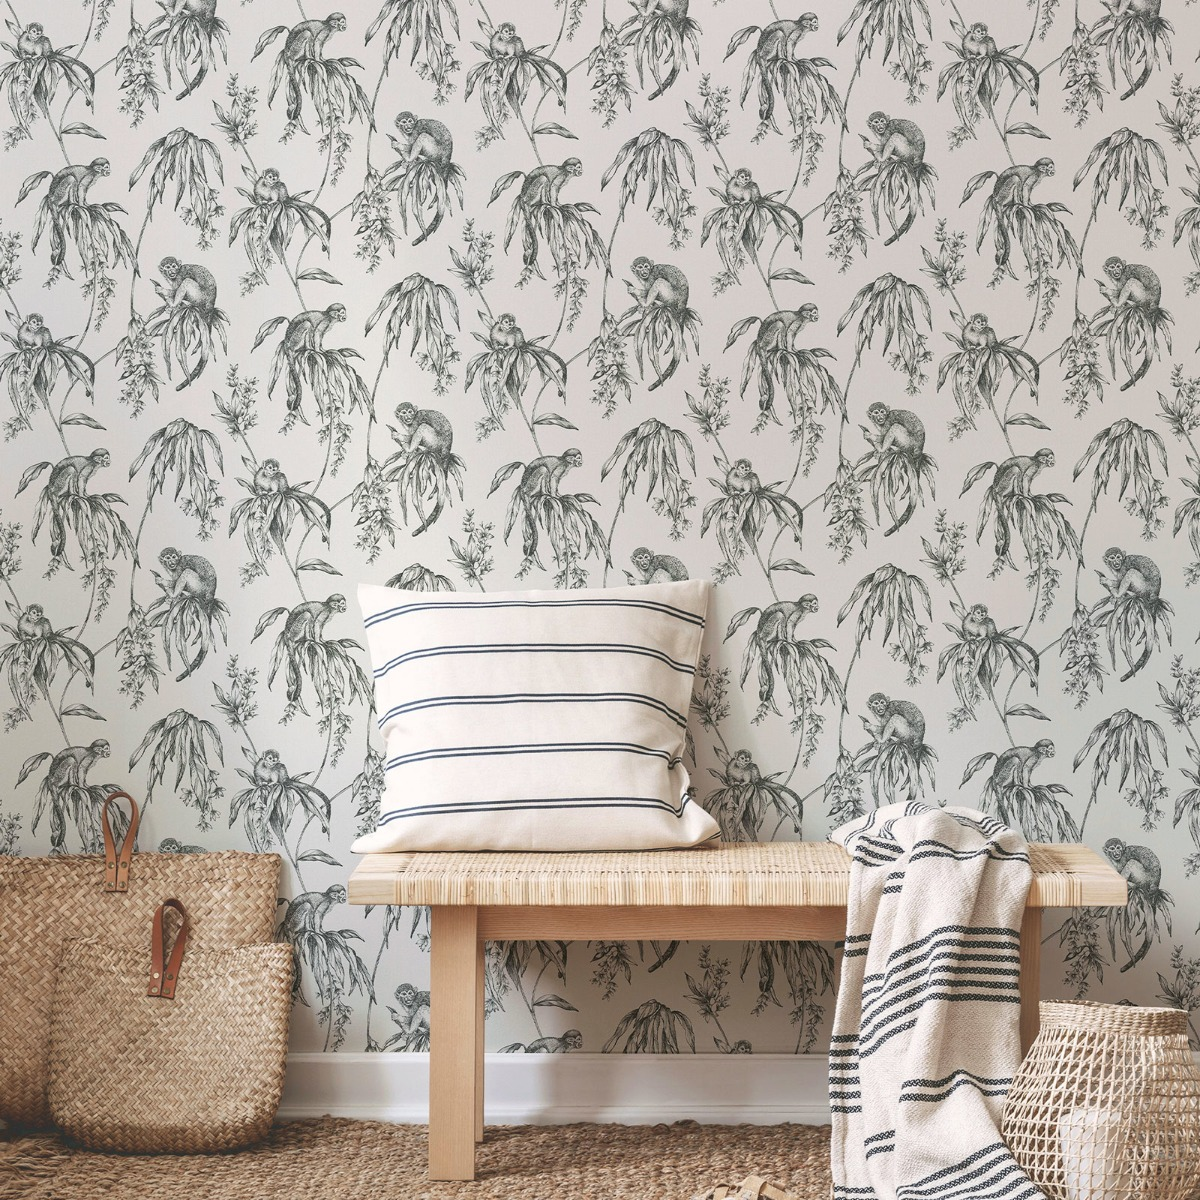 Sublime Saimiri Anthracite Monkey Wallpaper Graham and Brown 106157